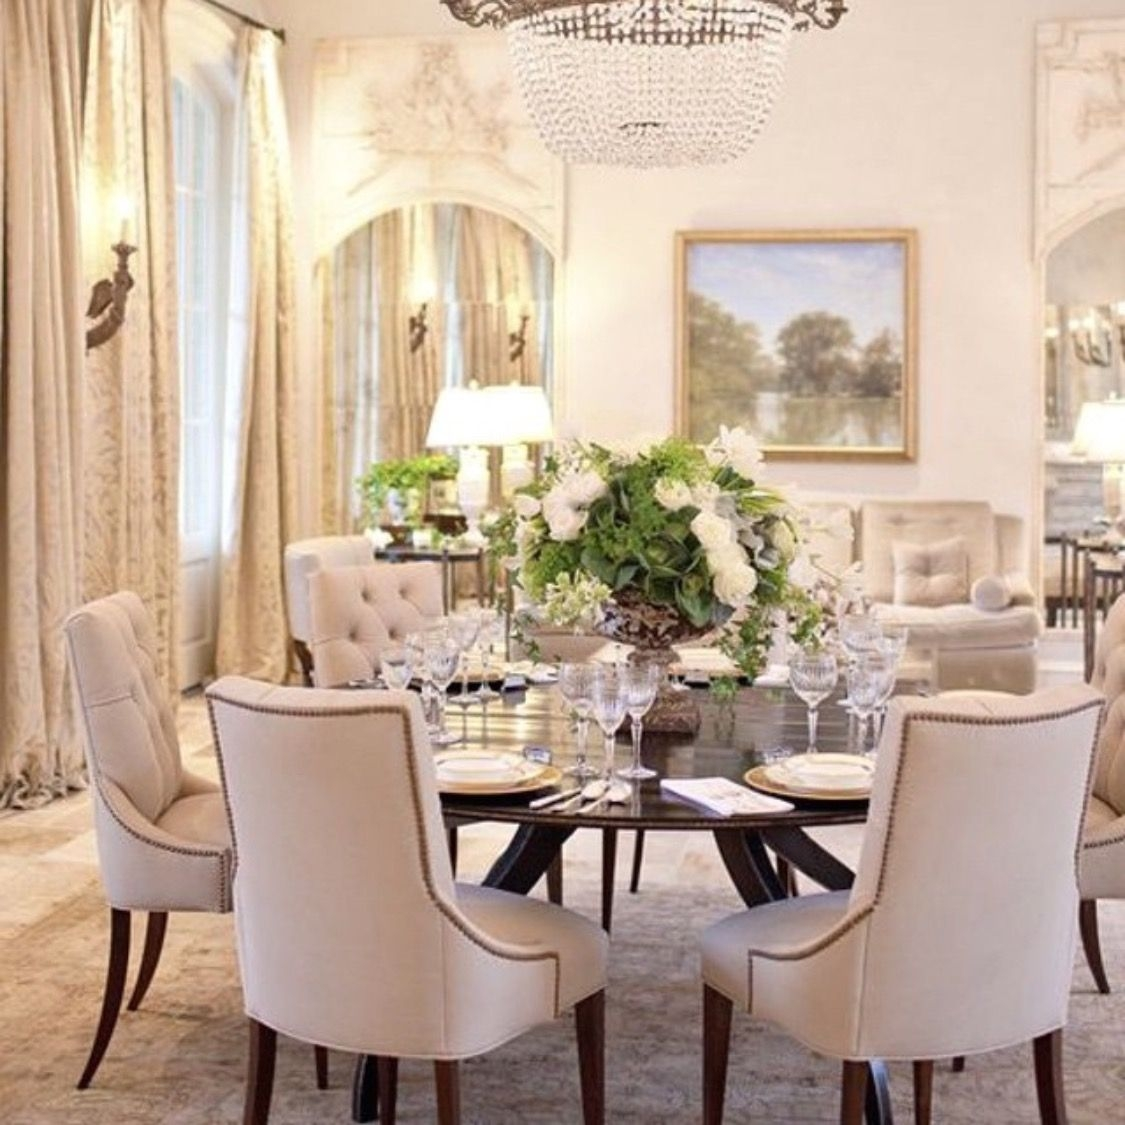 round living room set furniture design glass dining table sets ideas on foter dreaming of a